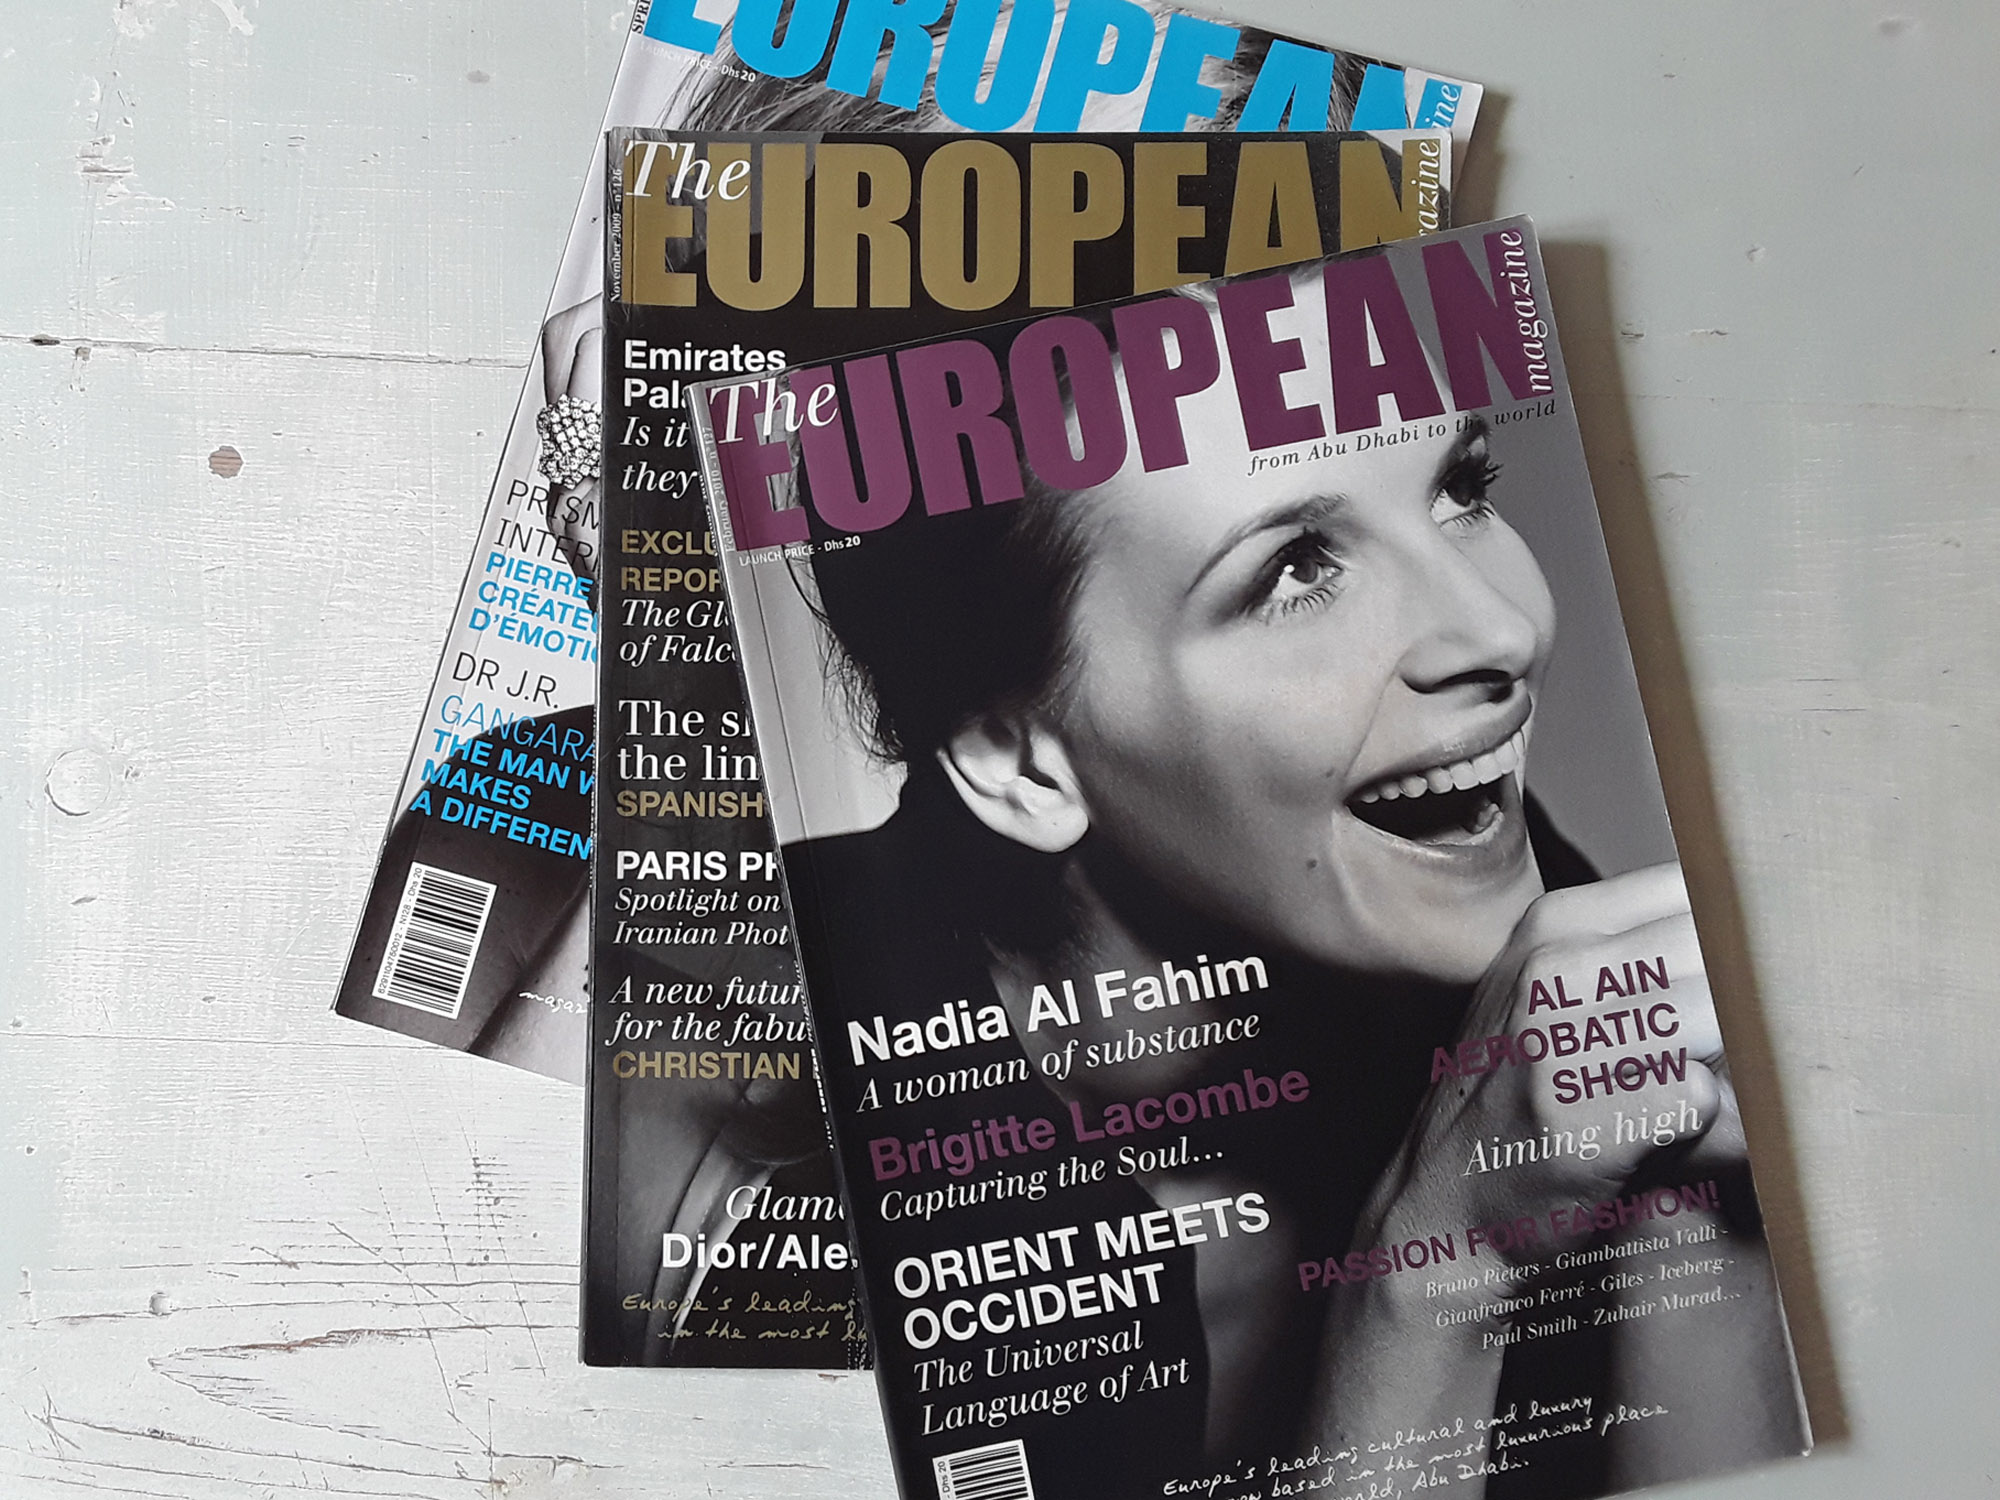 The European Magazine